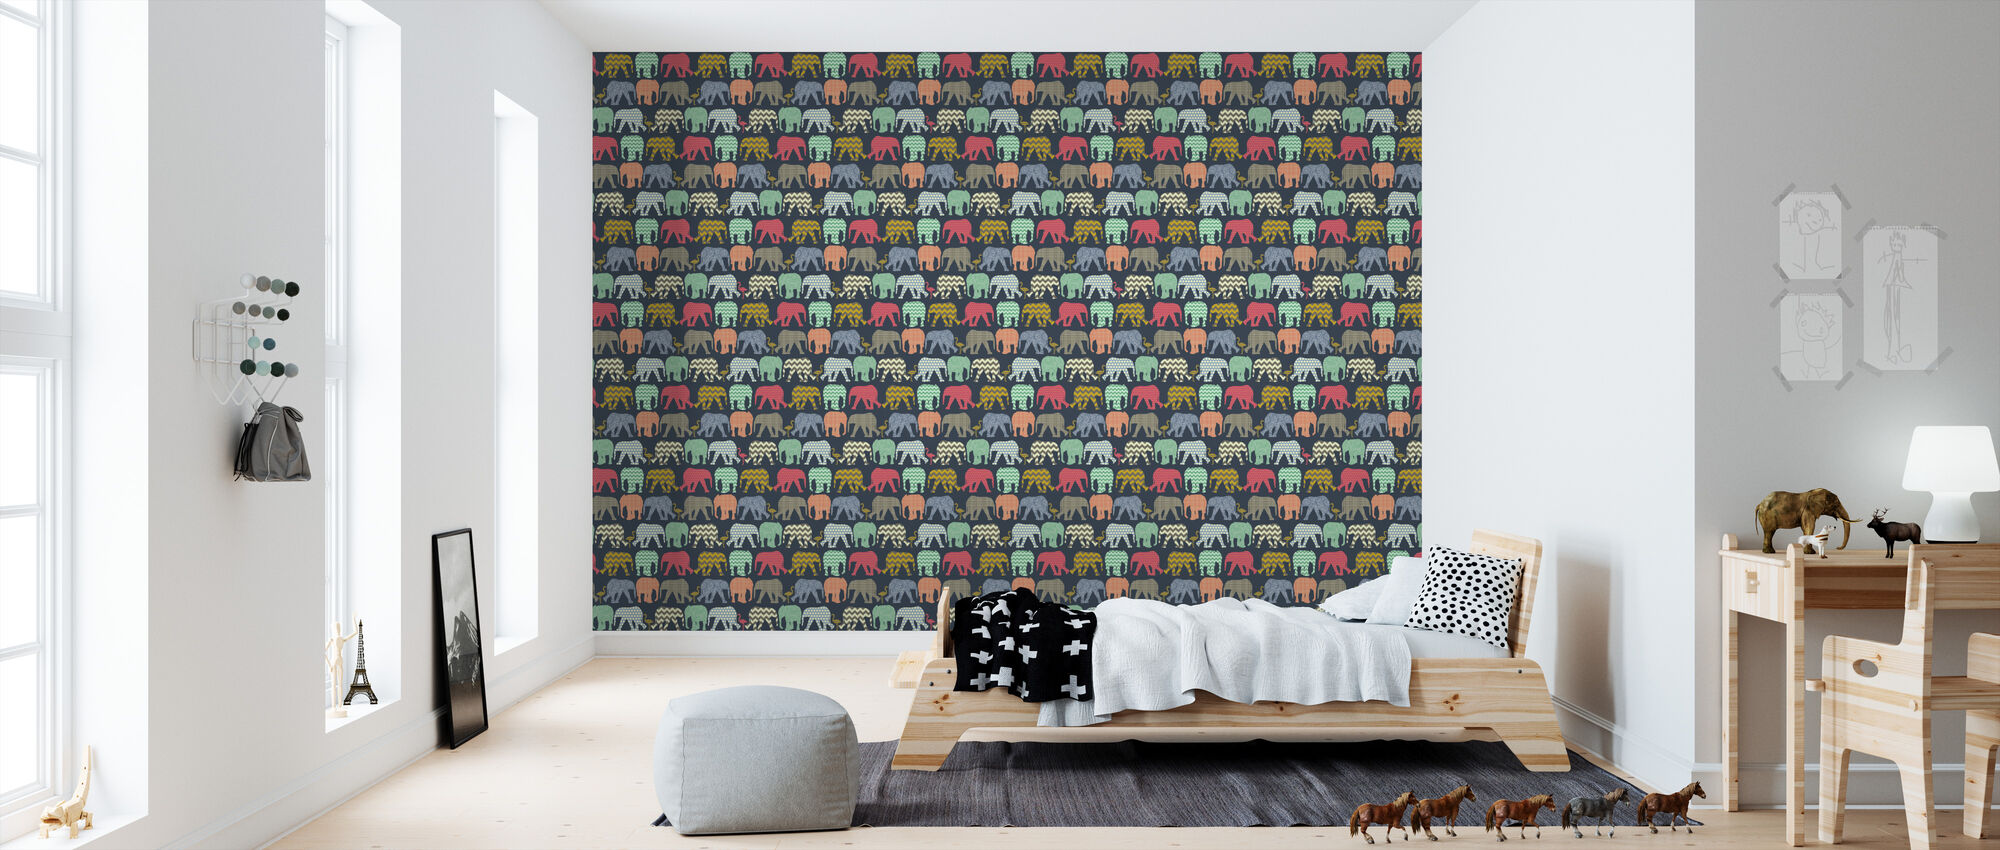 Baby Elephants and Flamingos 1 - Wallpaper - Kids Room